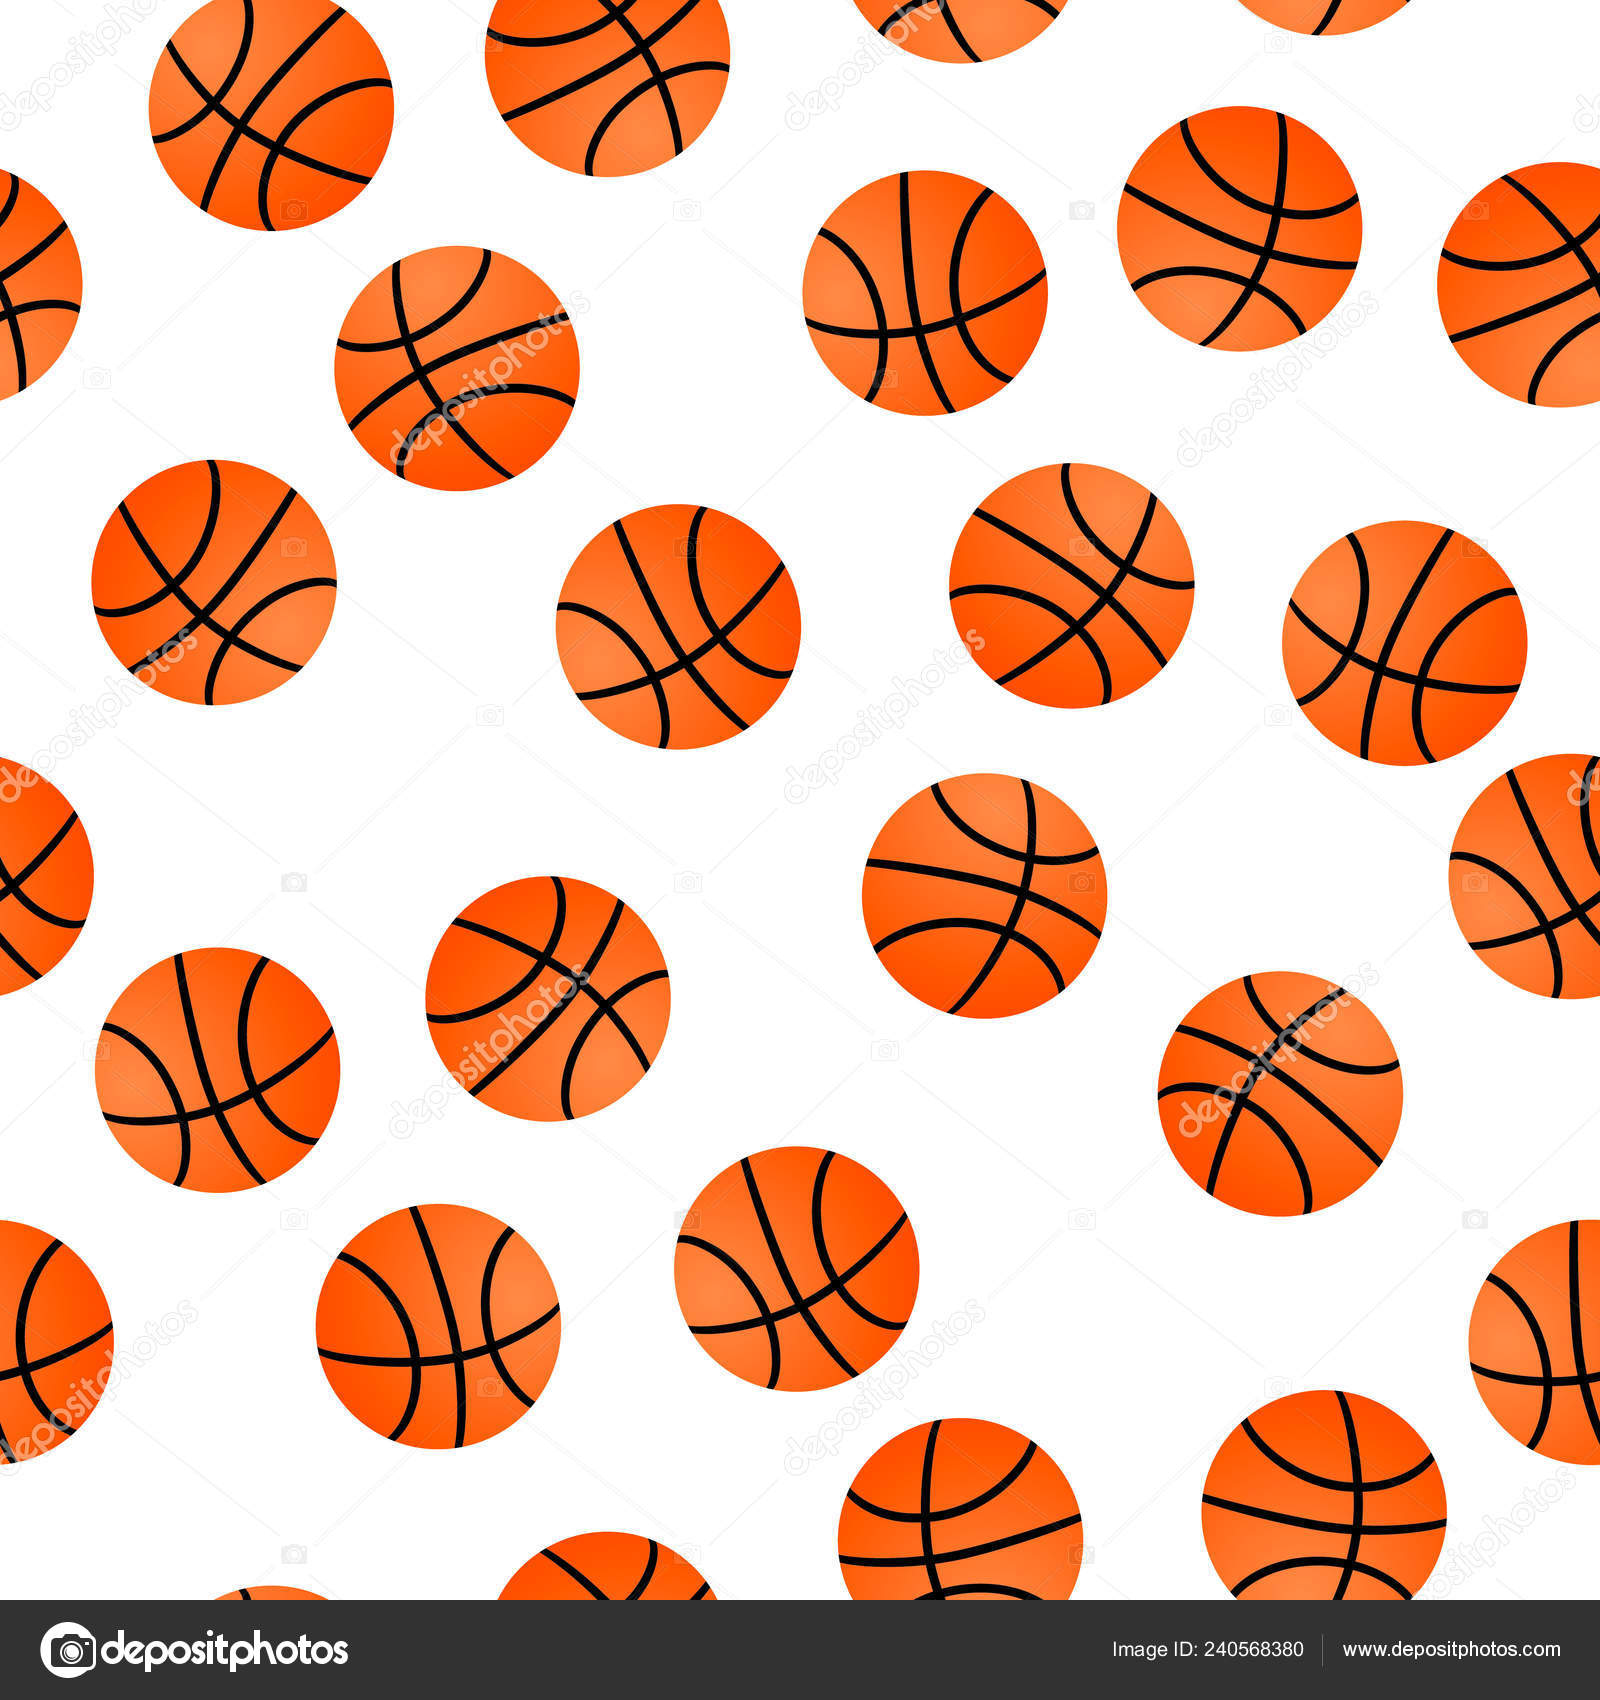 Orange Basket Balls White Background Basketball Seamless Pattern Cartoon Sport Stock Vector C Designergraphic84 240568380